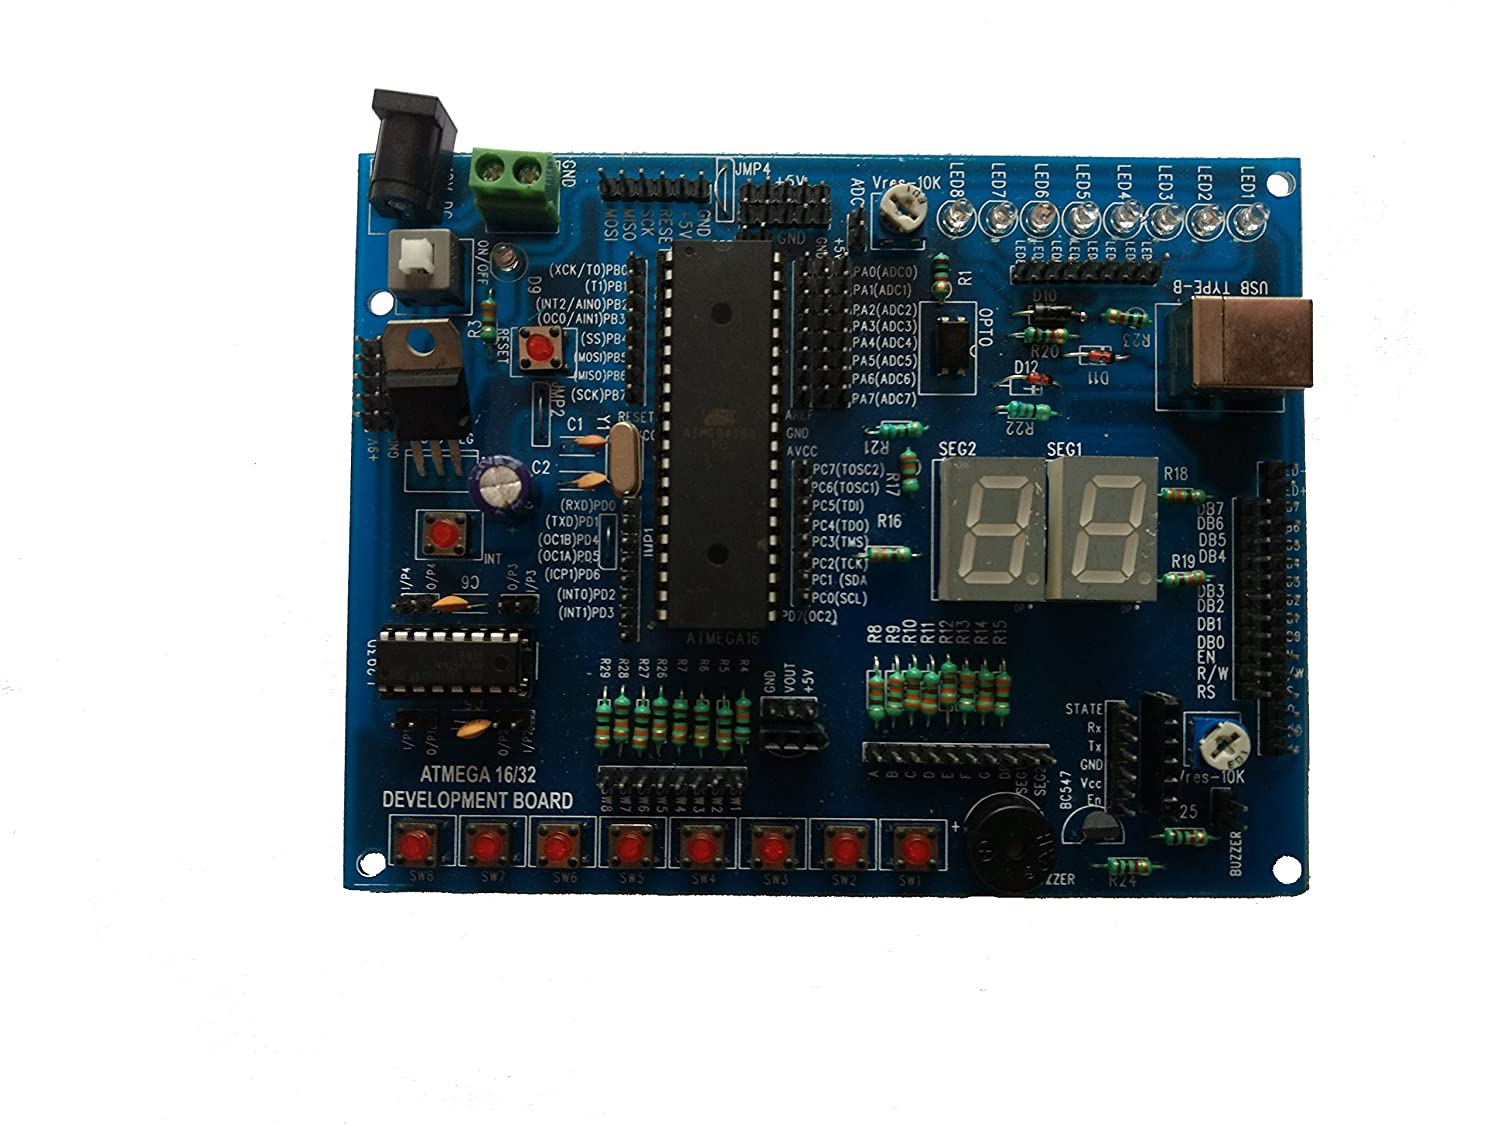 Embeddinator Avr Atmega16 32 Microcontroller Development Board Basics Updated Using An Accelerometer With